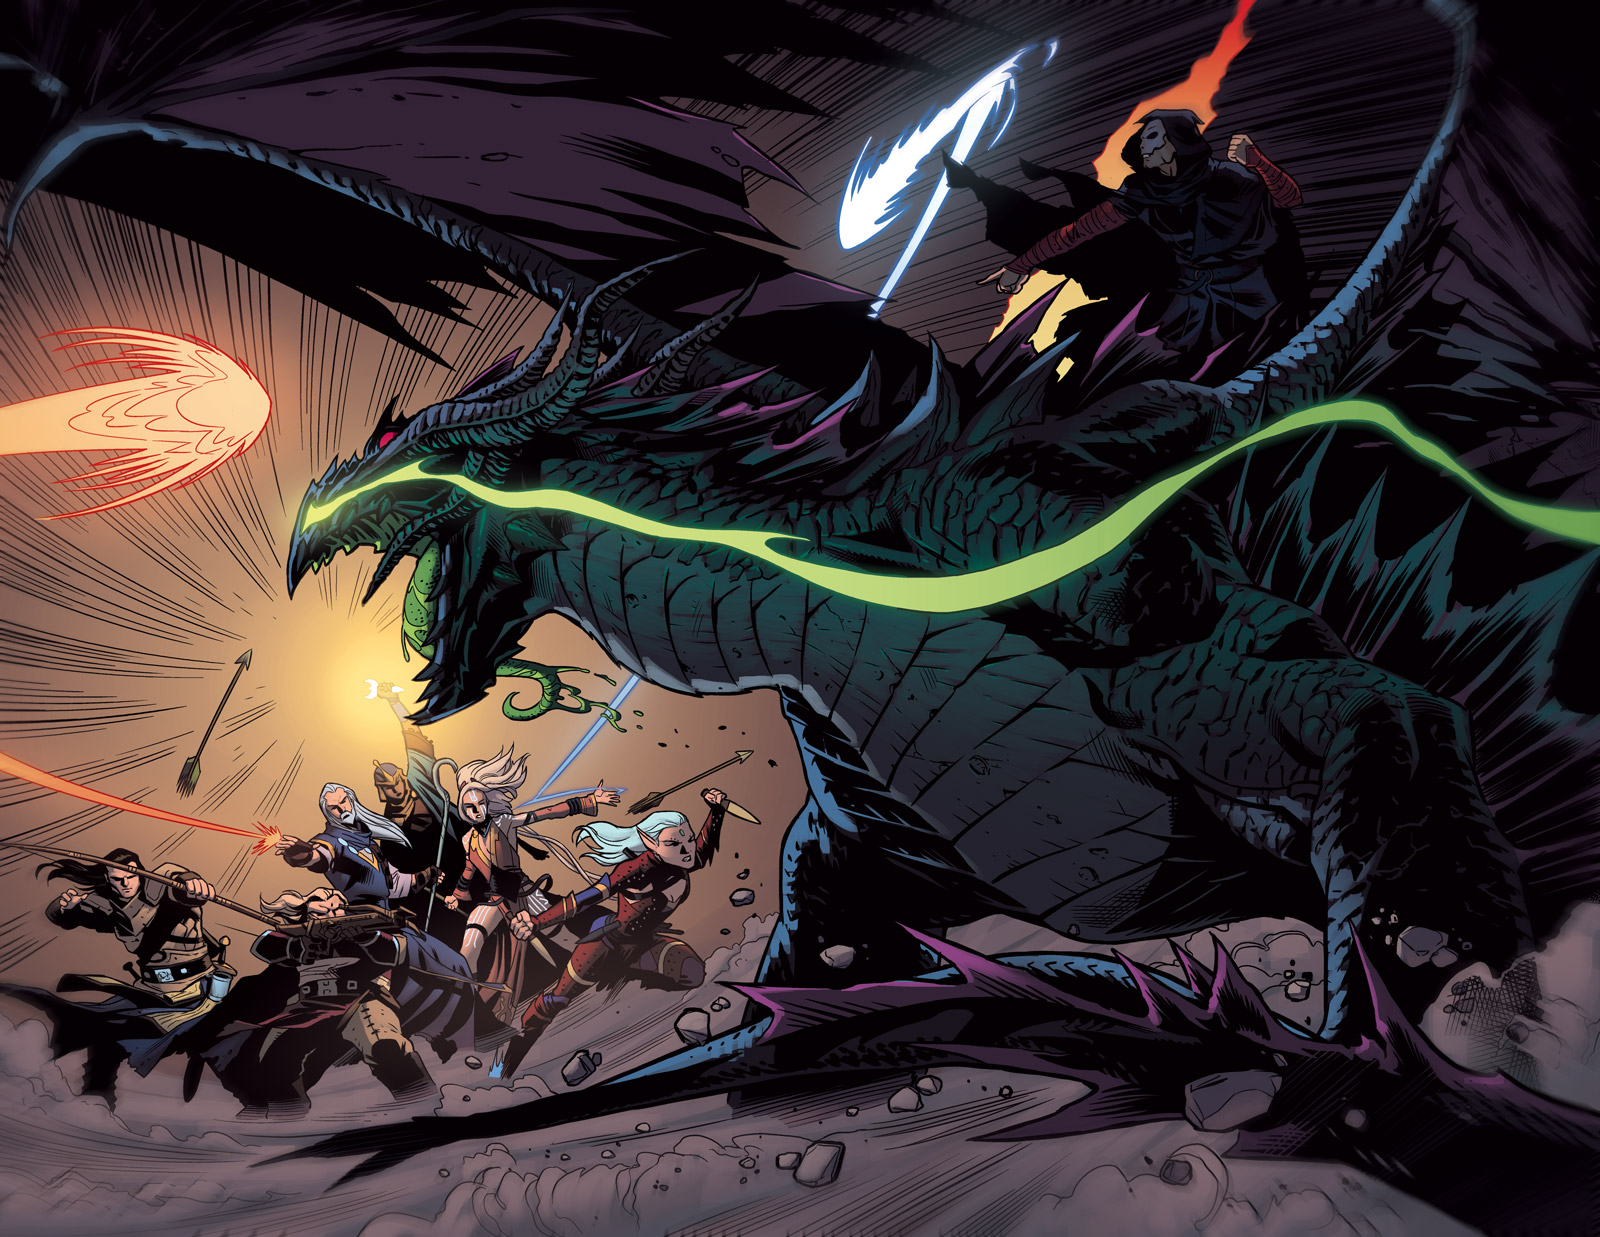 Pathfinder #12 Two-page spread by Ross-A-Campbell